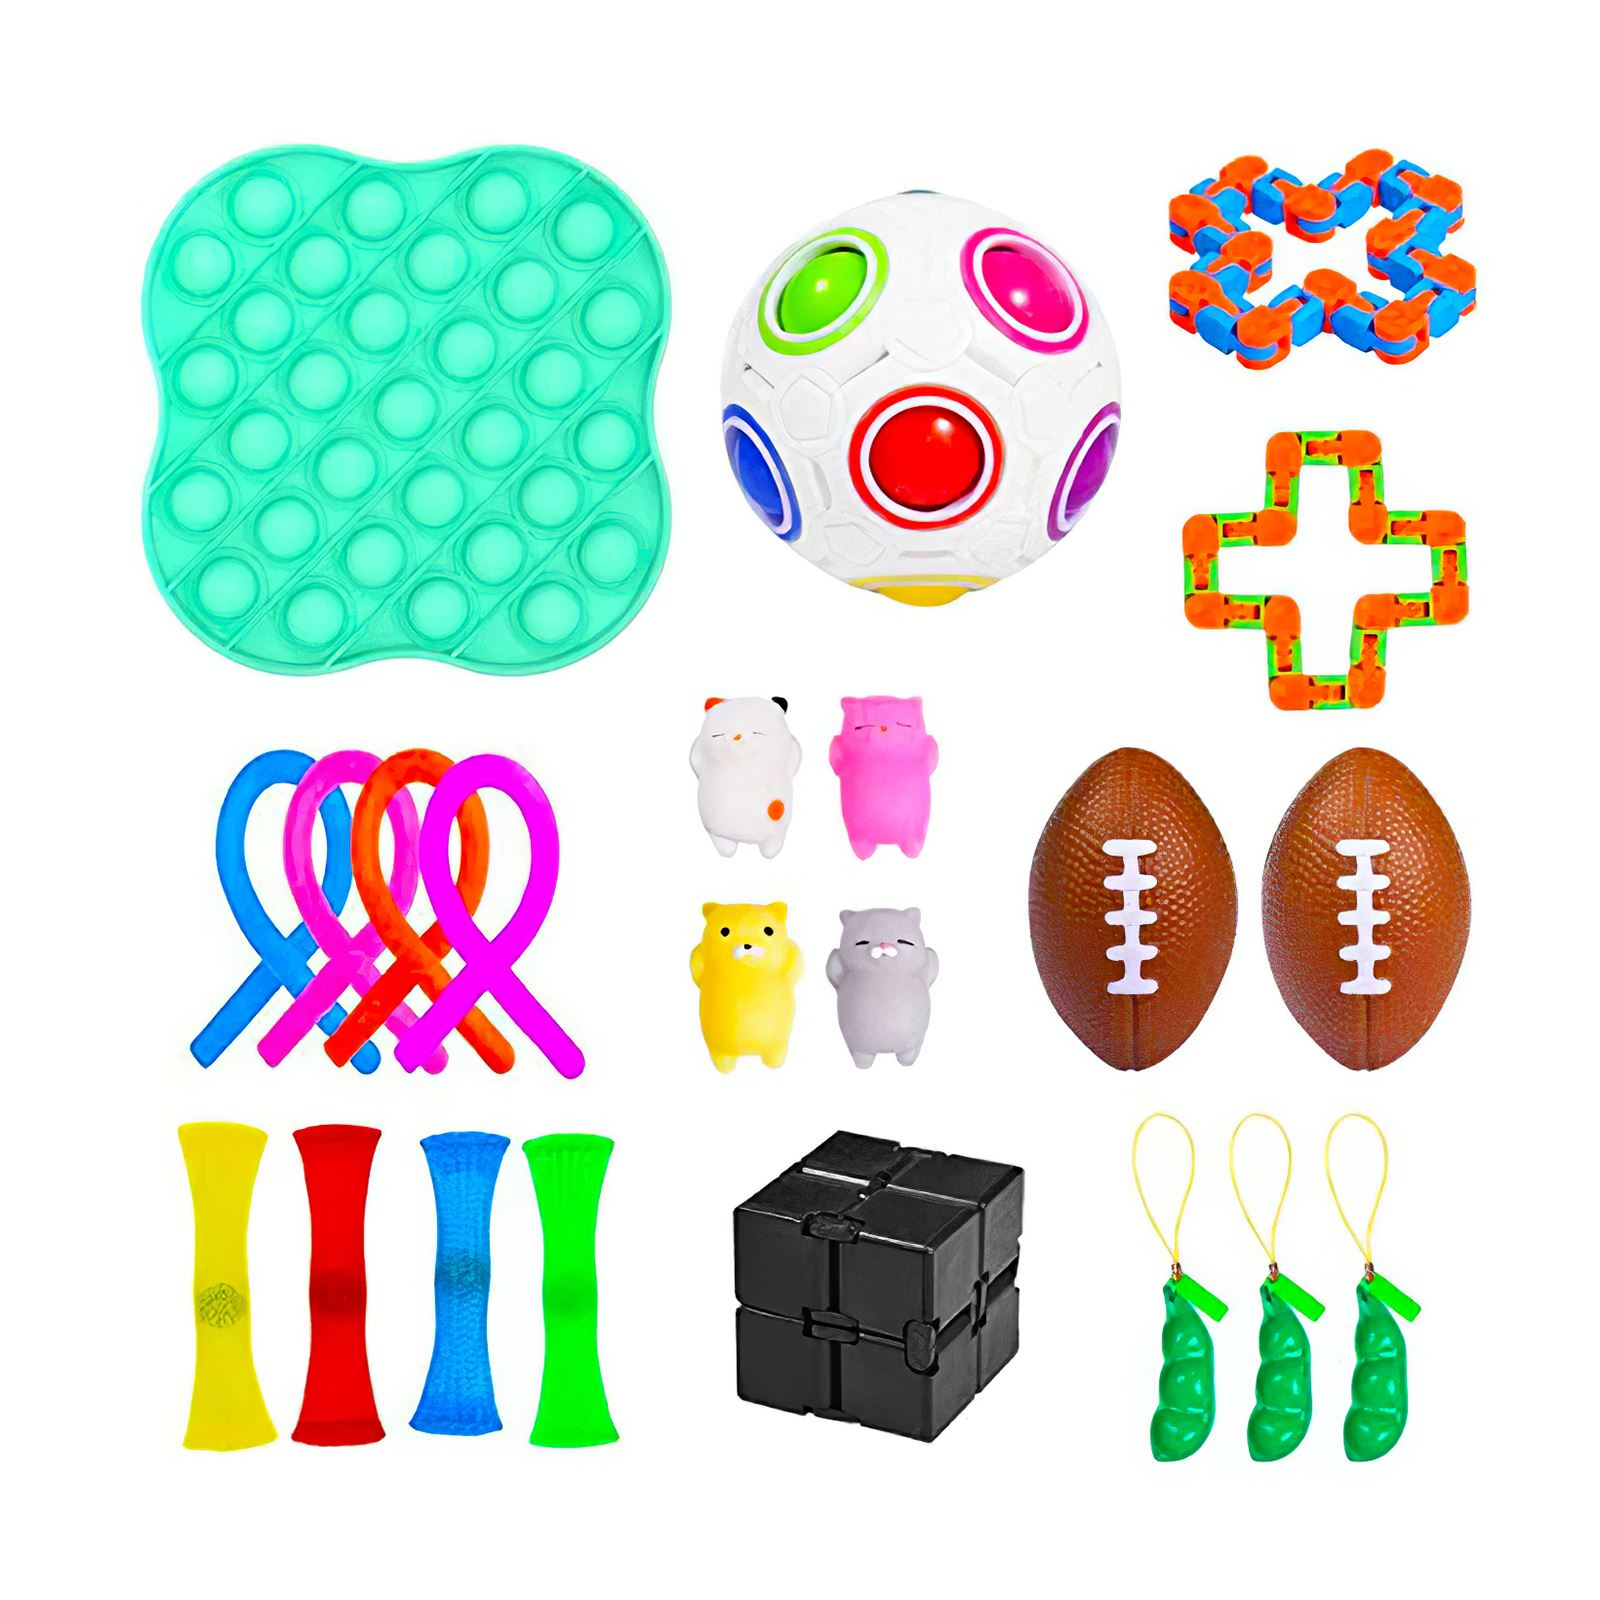 25Pcs/Pack Fidget Sensory Toy Set Stress Relief Toys Autism Anxiety Relief Stress Pop img3